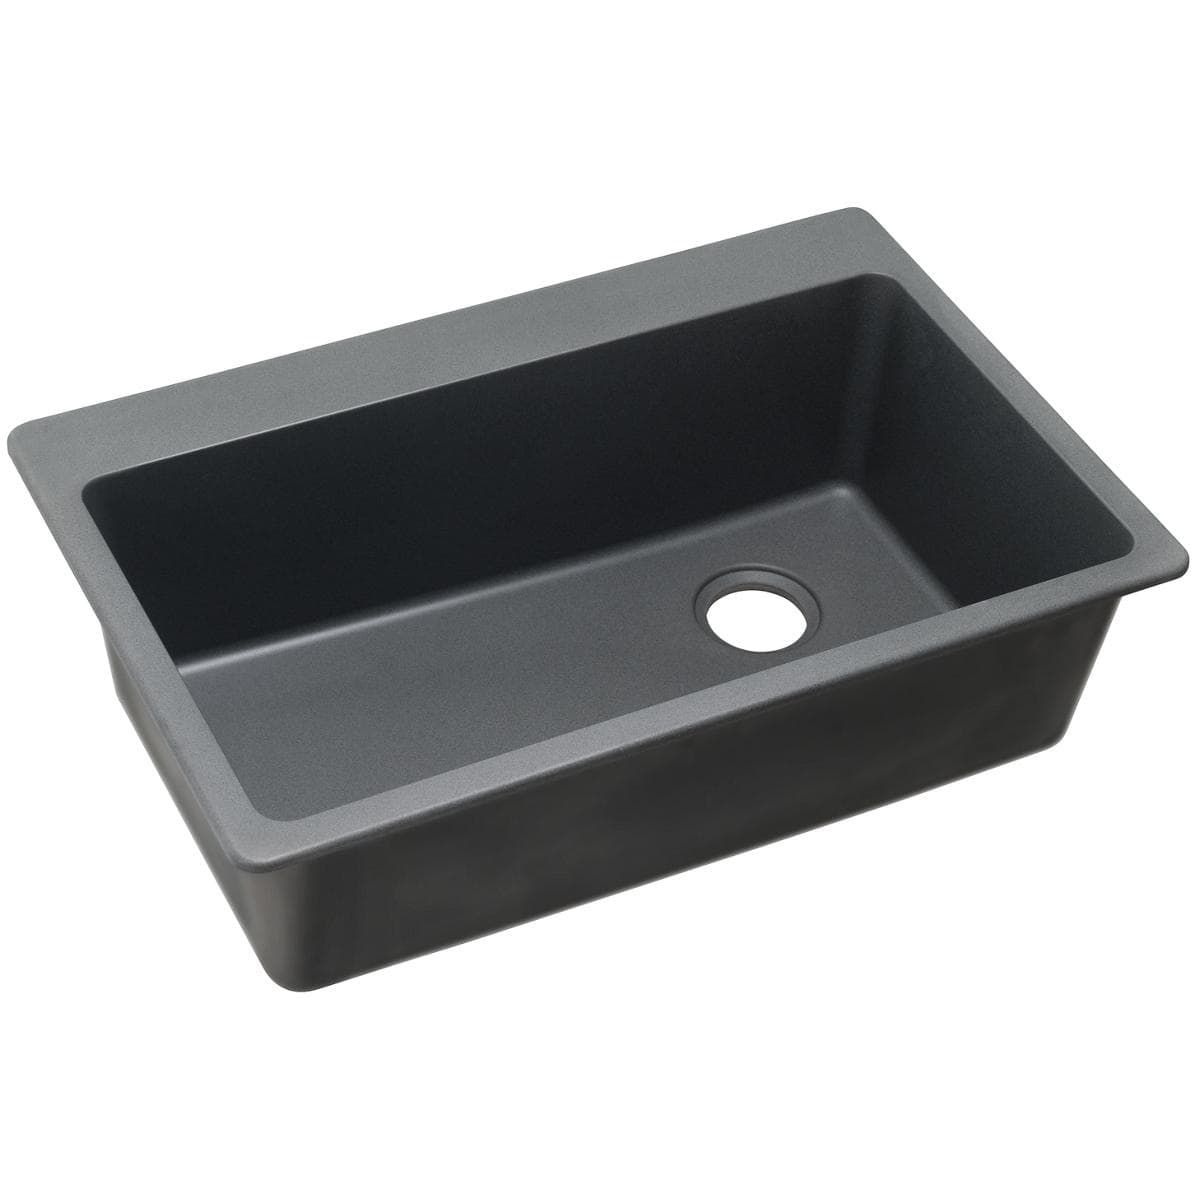 Best Elkay Quartz Classic 33 X 22 X 9 1 2 Single Bowl Top 400 x 300